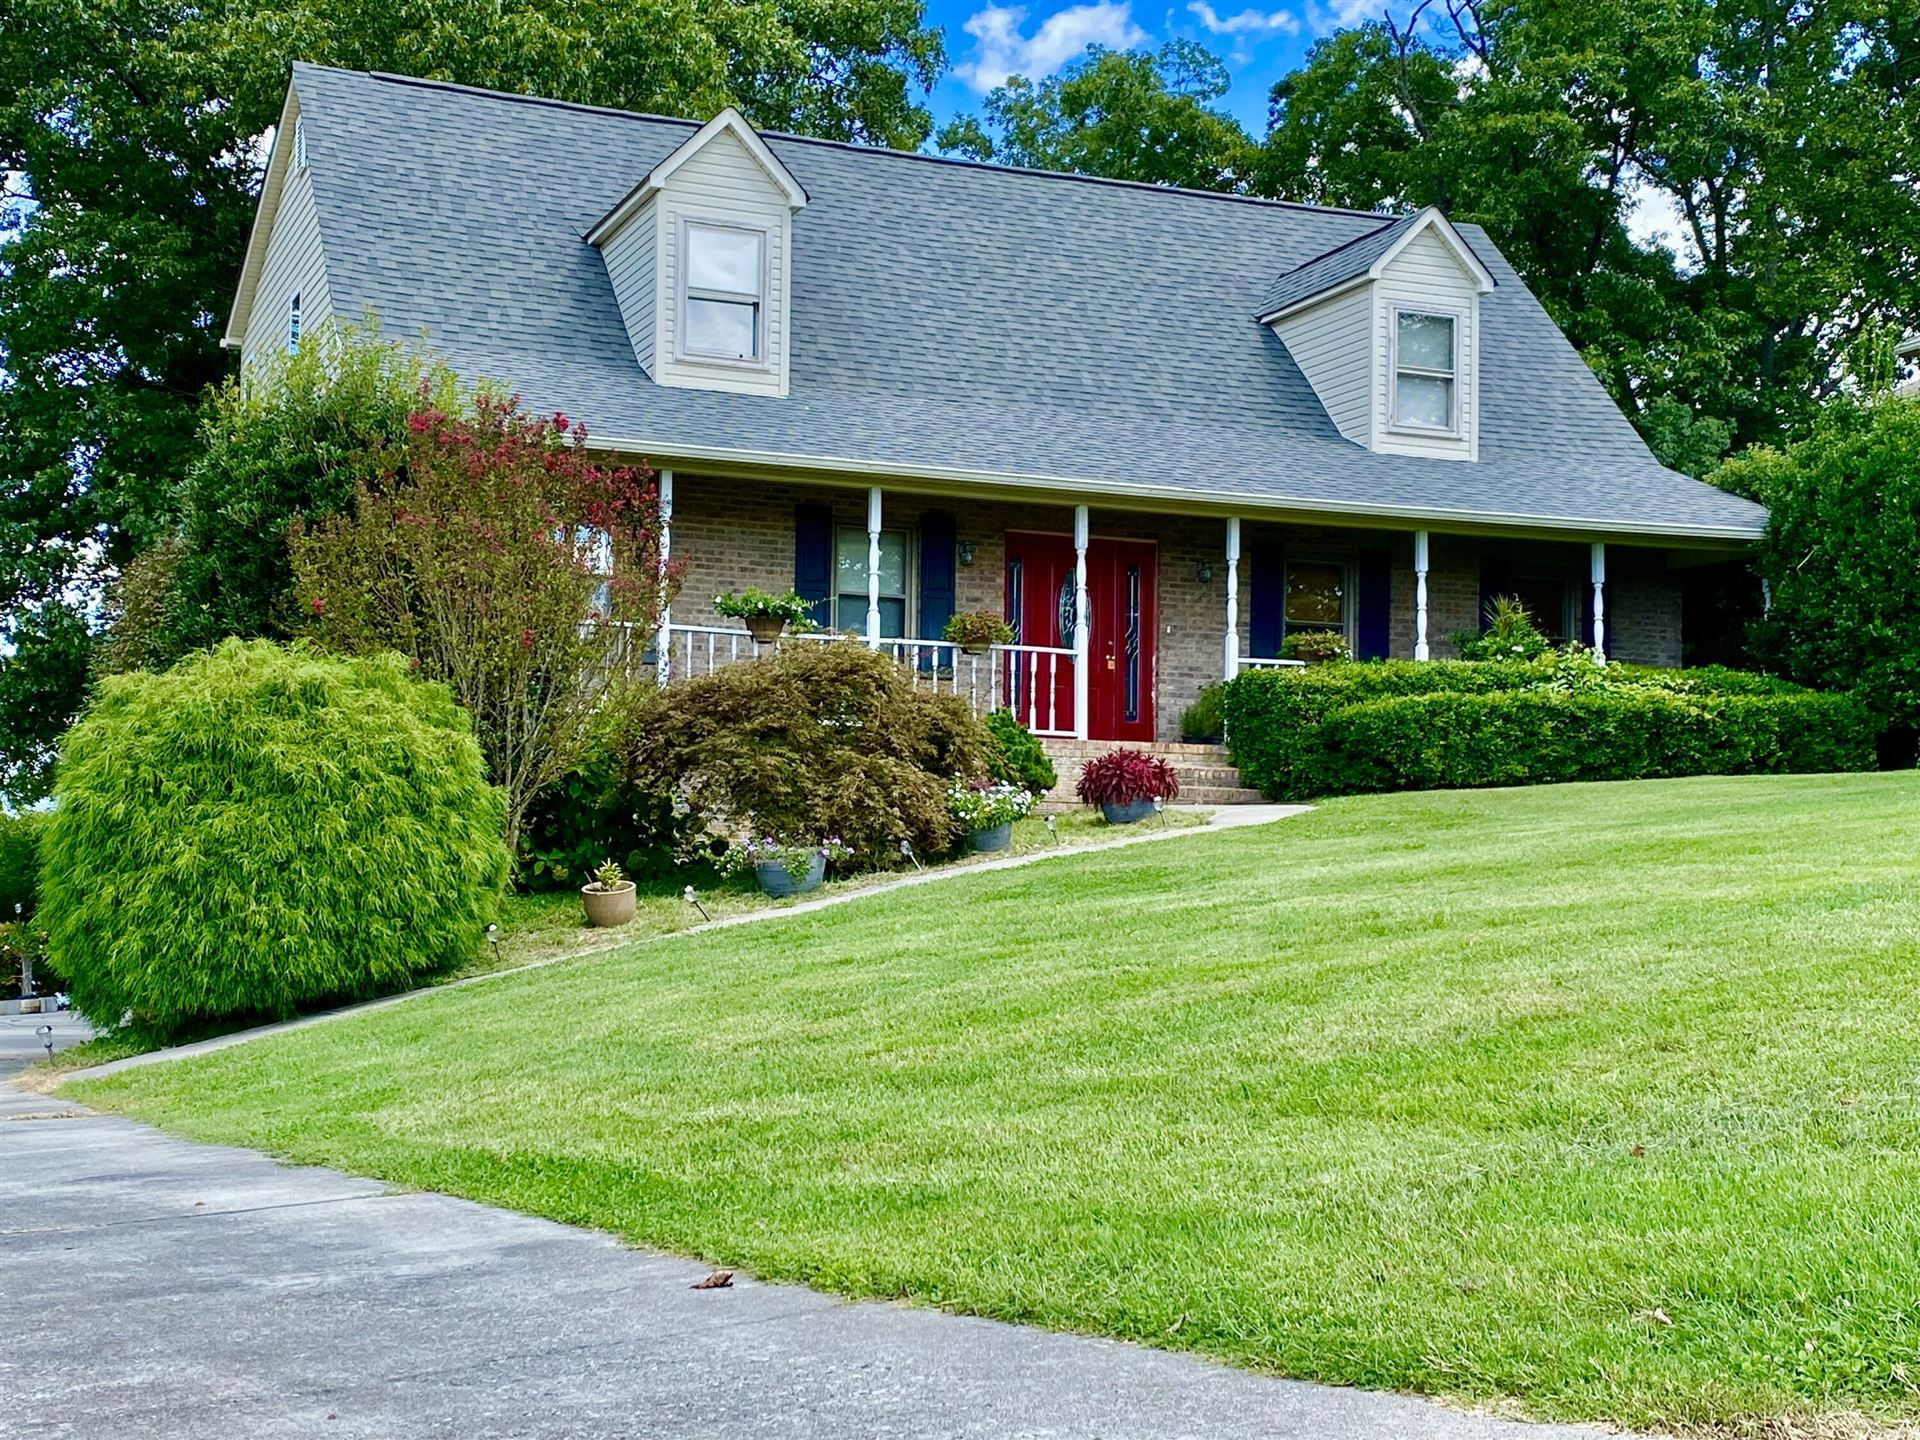 Photo of 4149 Carnation Dr. Drive, Morristown, TN 37814 (MLS # 9928399)